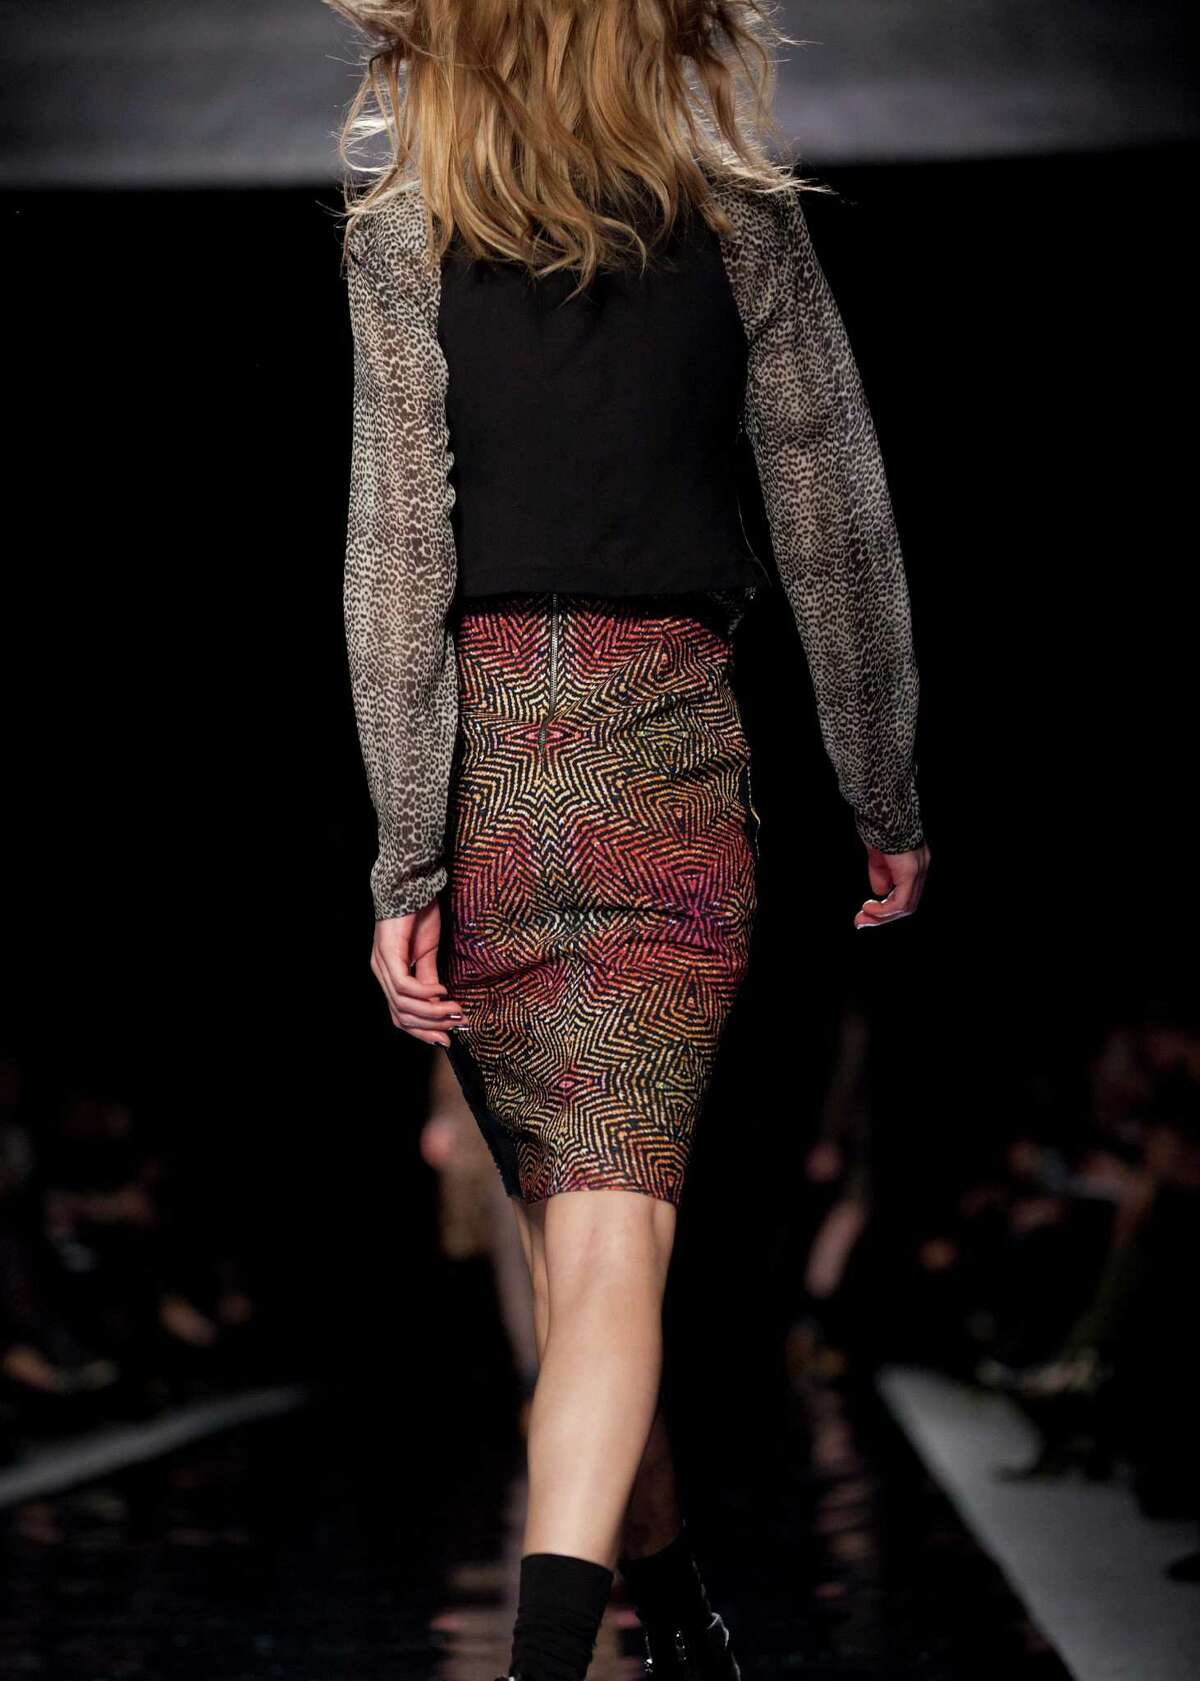 A model walks the runway during the Nicole Miller Fall 2013 fashion show during Fashion Week, Friday, Feb. 8, 2013, in New York.